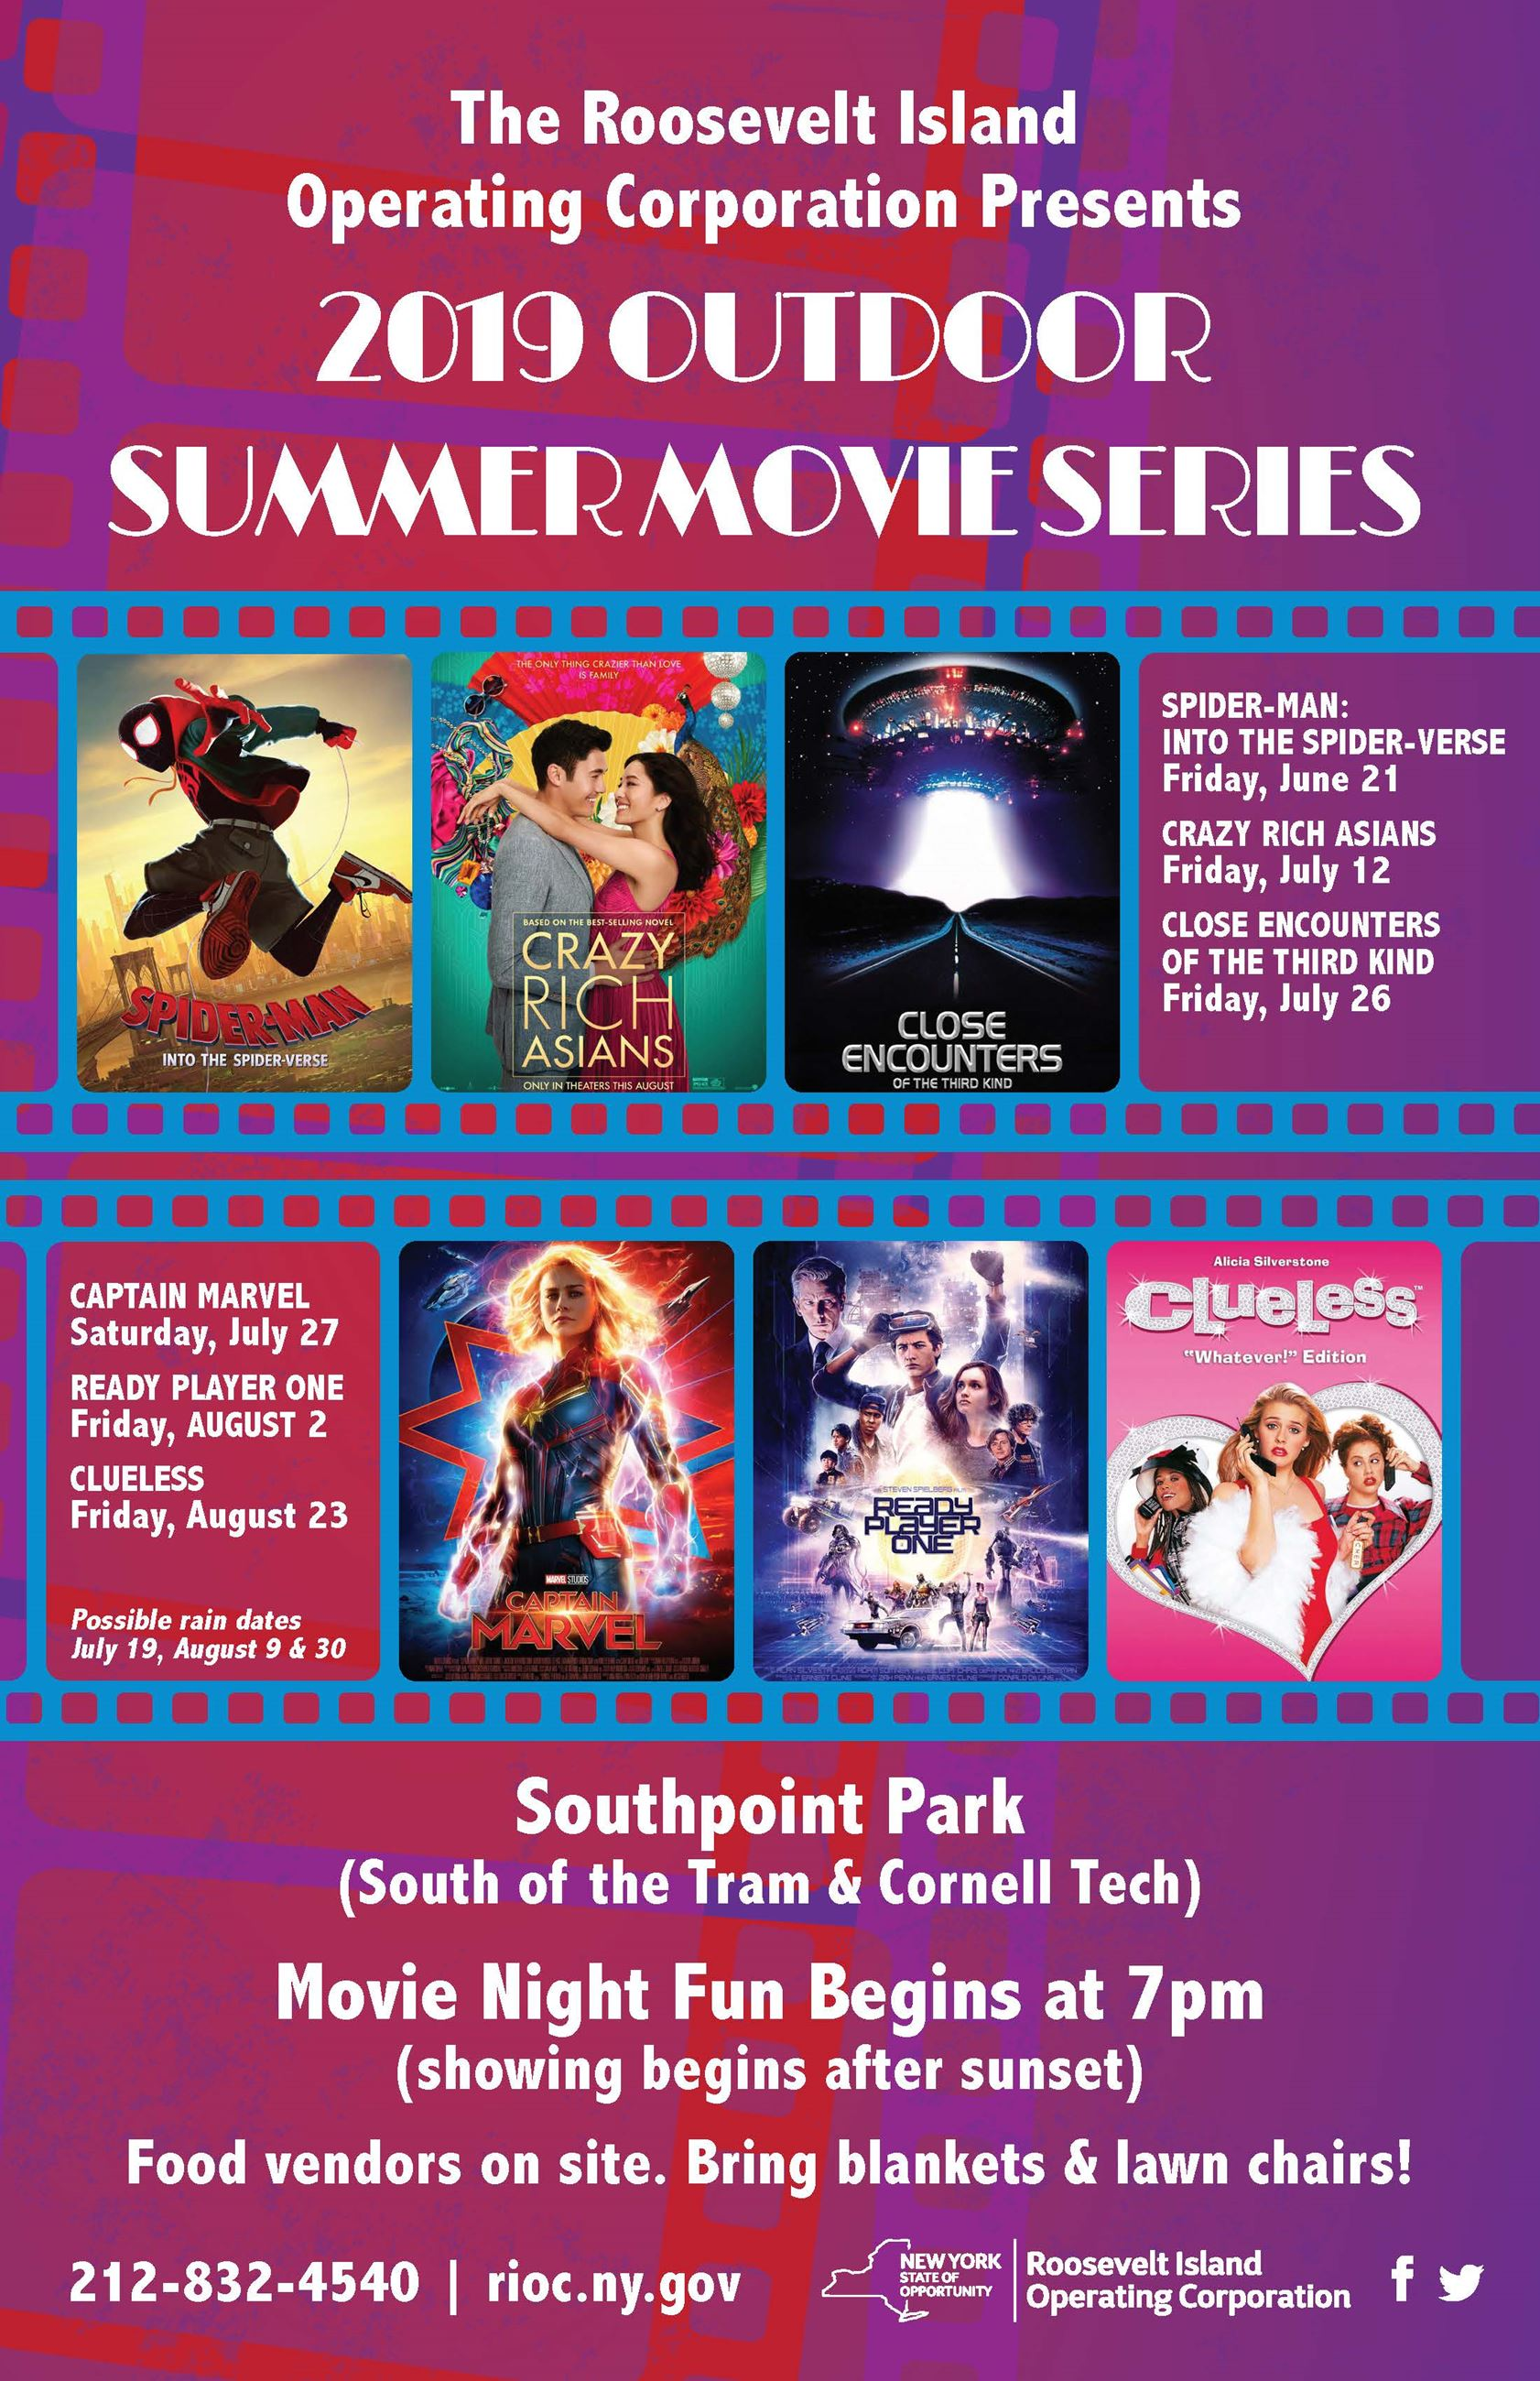 2019 Summer Movie Series Poster